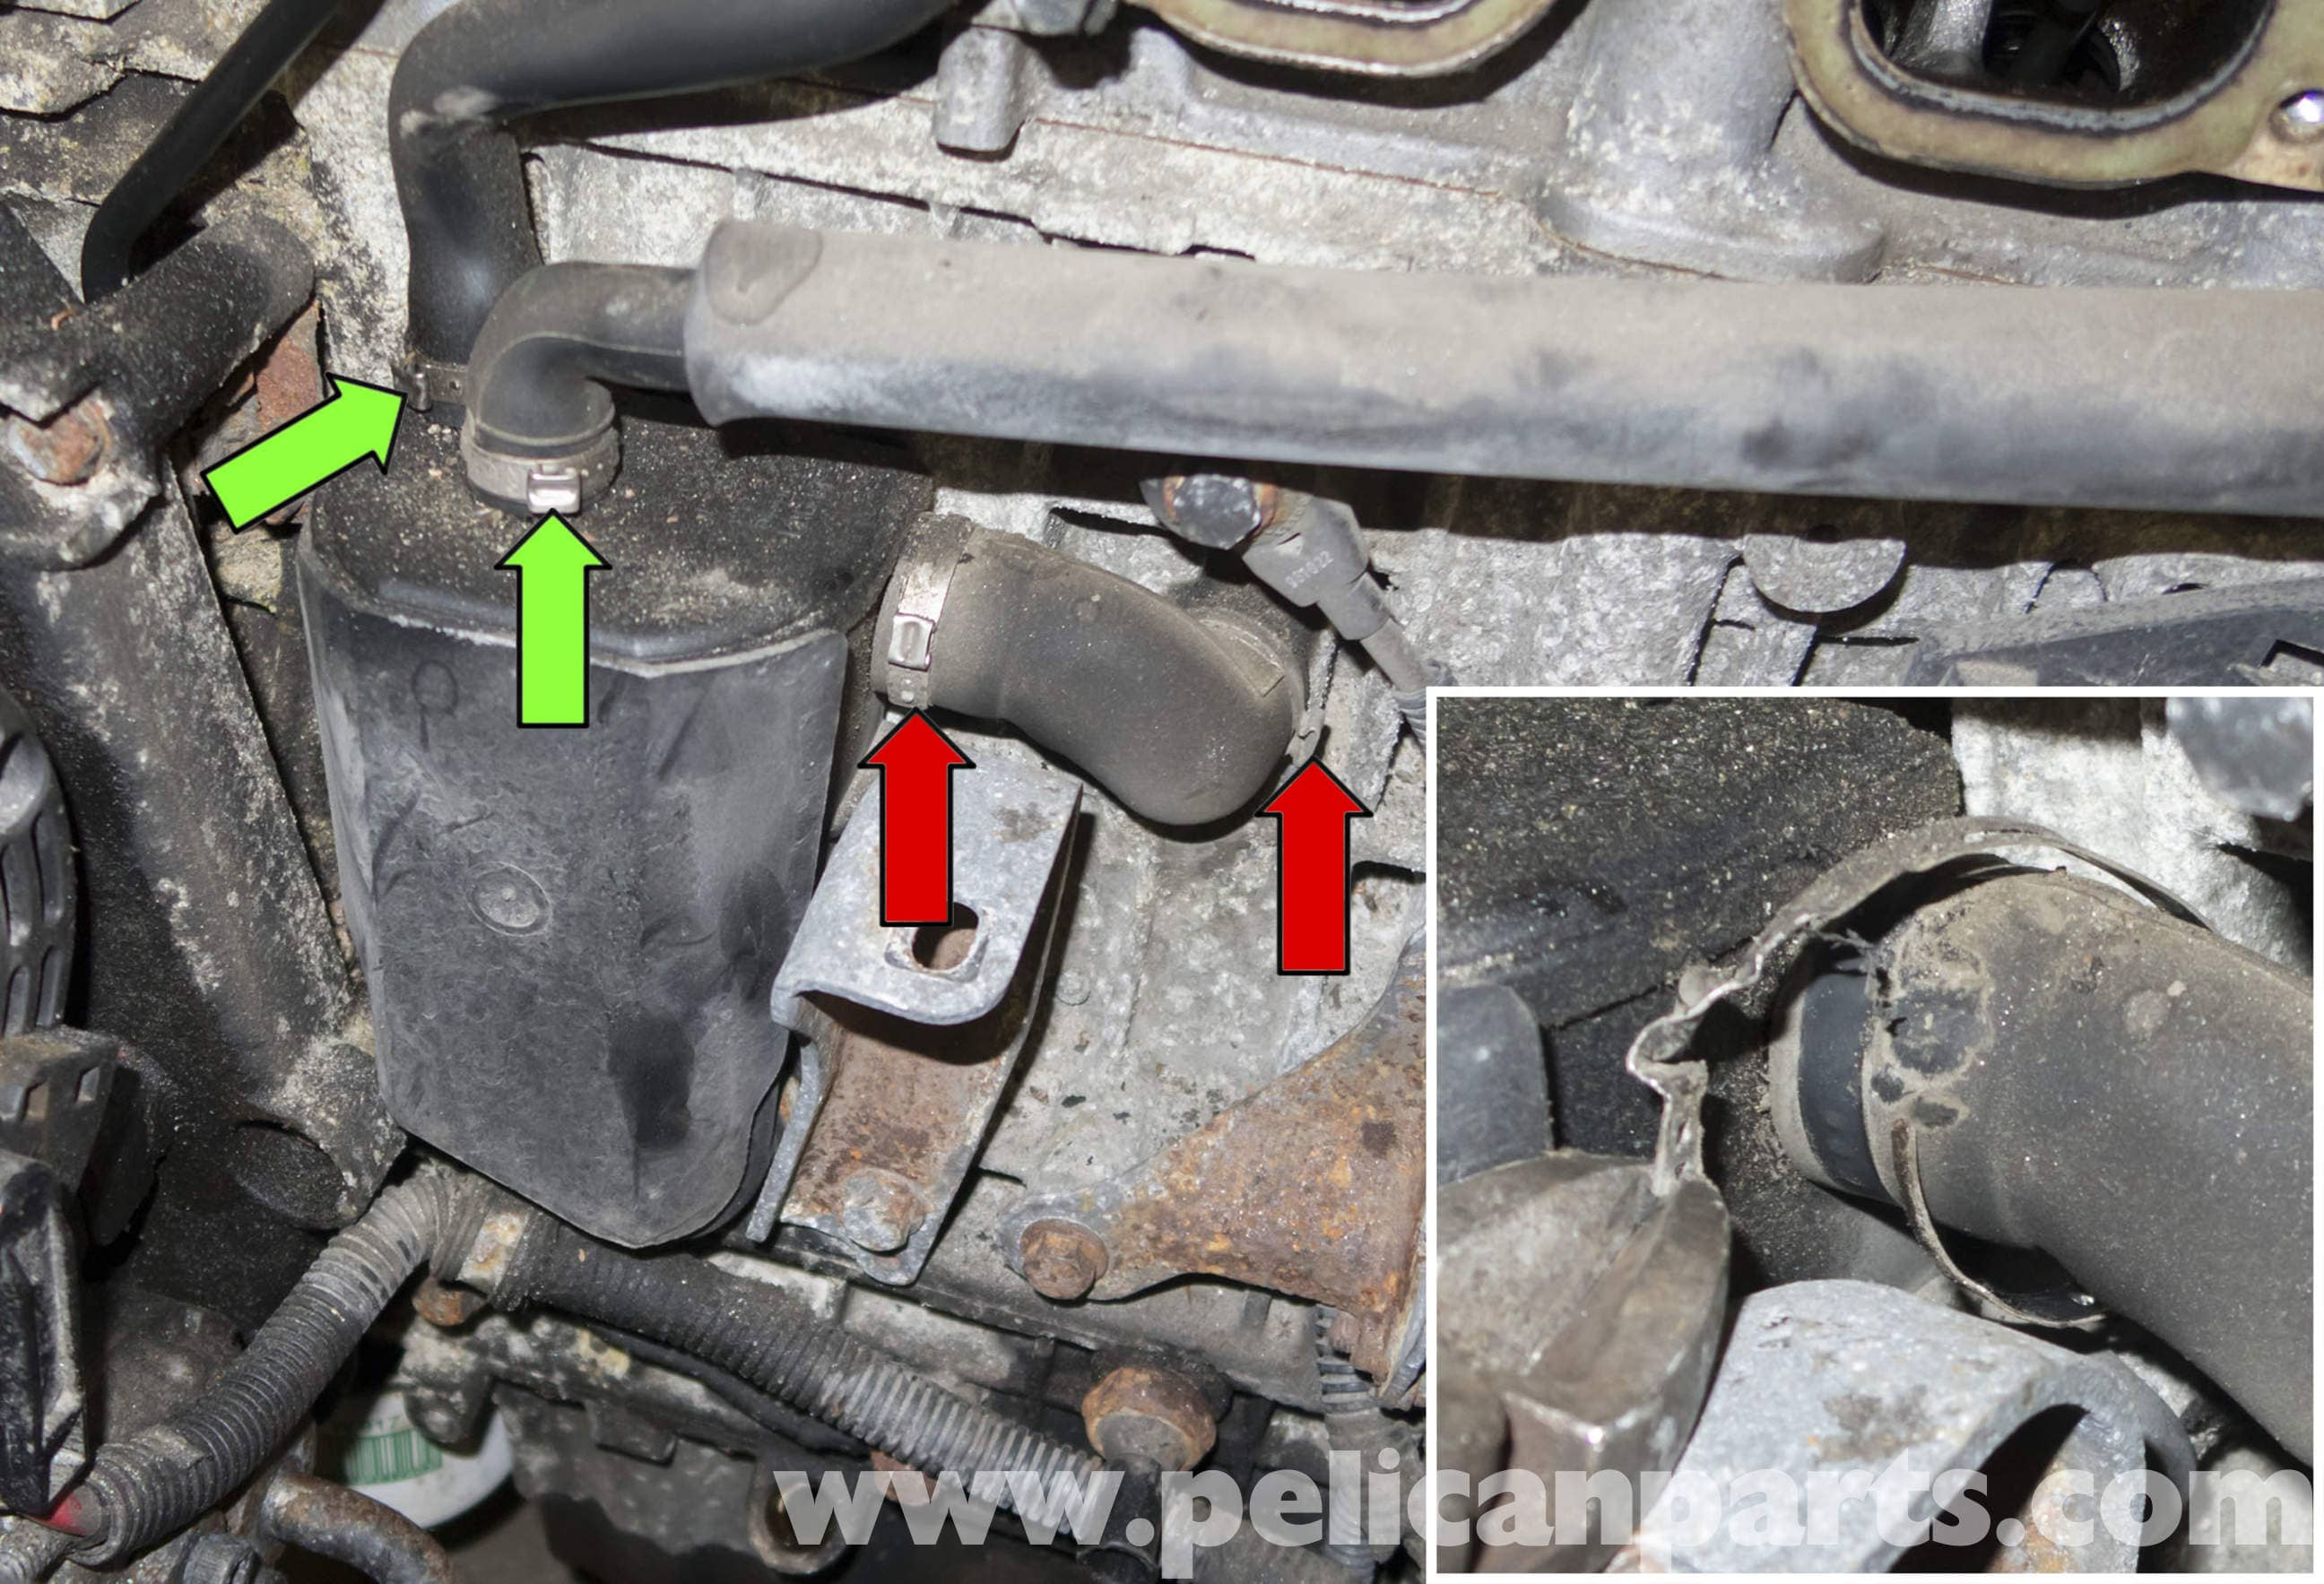 Volvo V70 Crankcase Breather Replacement (1998-2007) - Pelican Parts DIY Maintenance Article